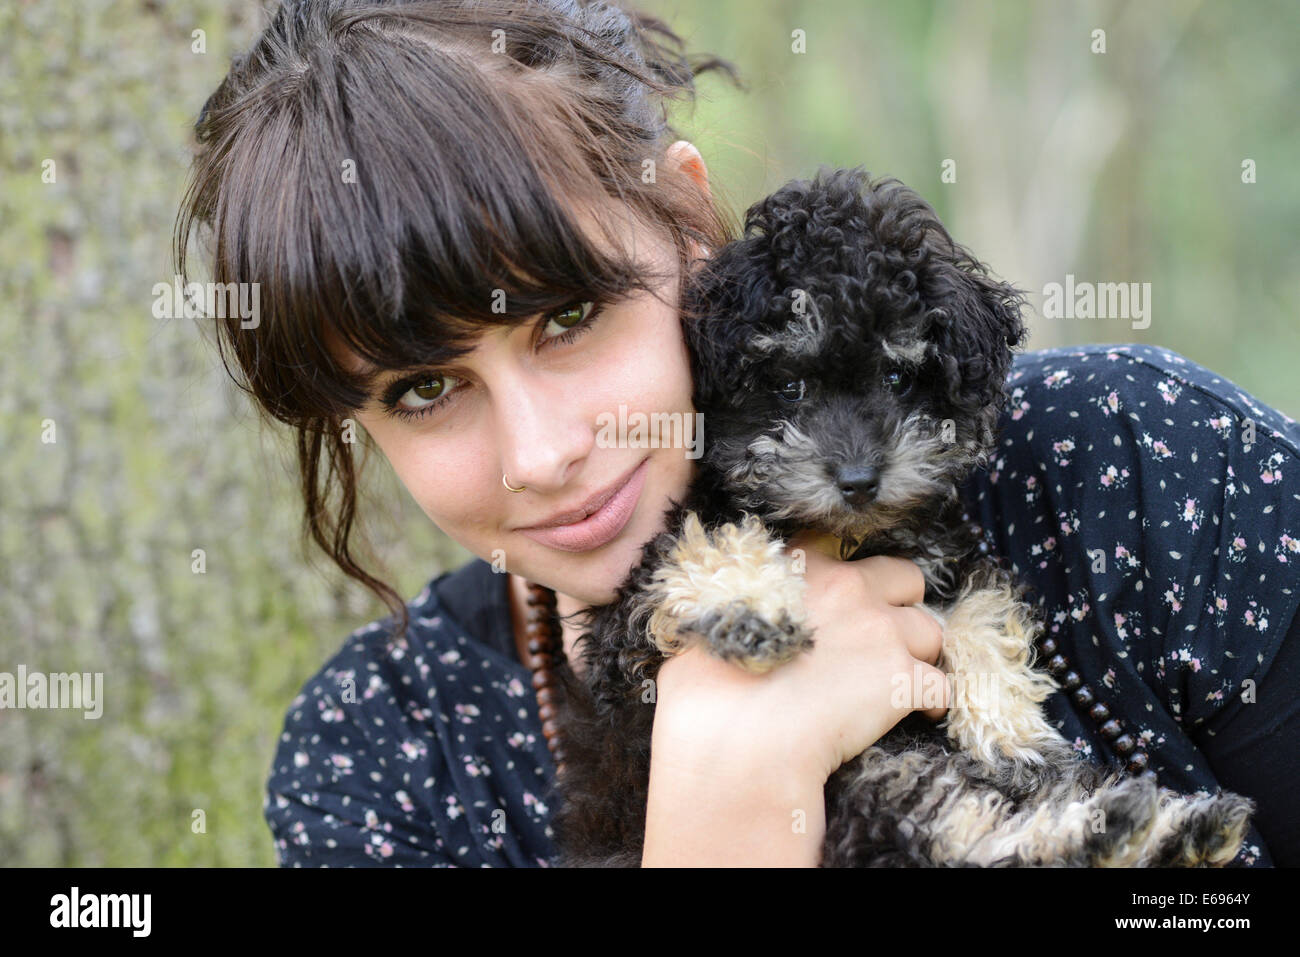 Young woman holding a Toy Poodle or Teacup Poodle, black and tan